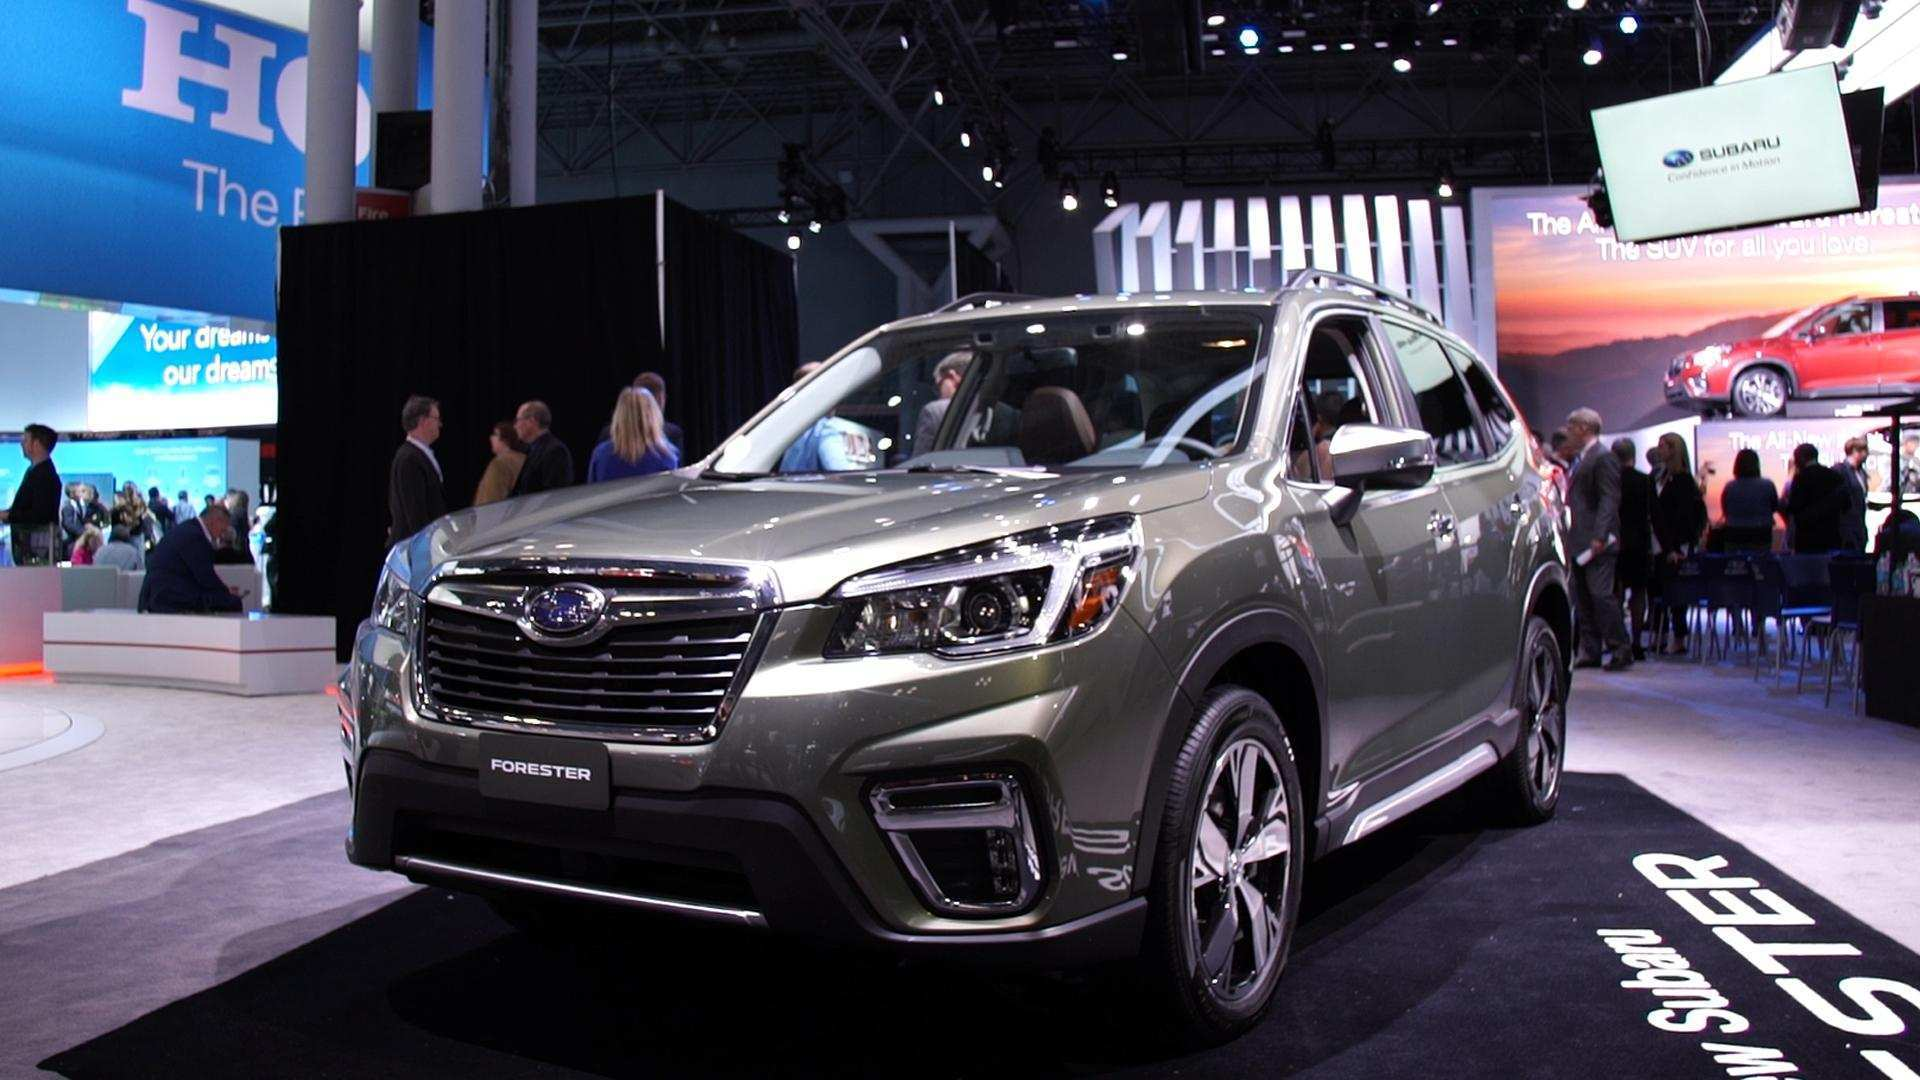 90 All New 2019 Subaru Suv Price by 2019 Subaru Suv